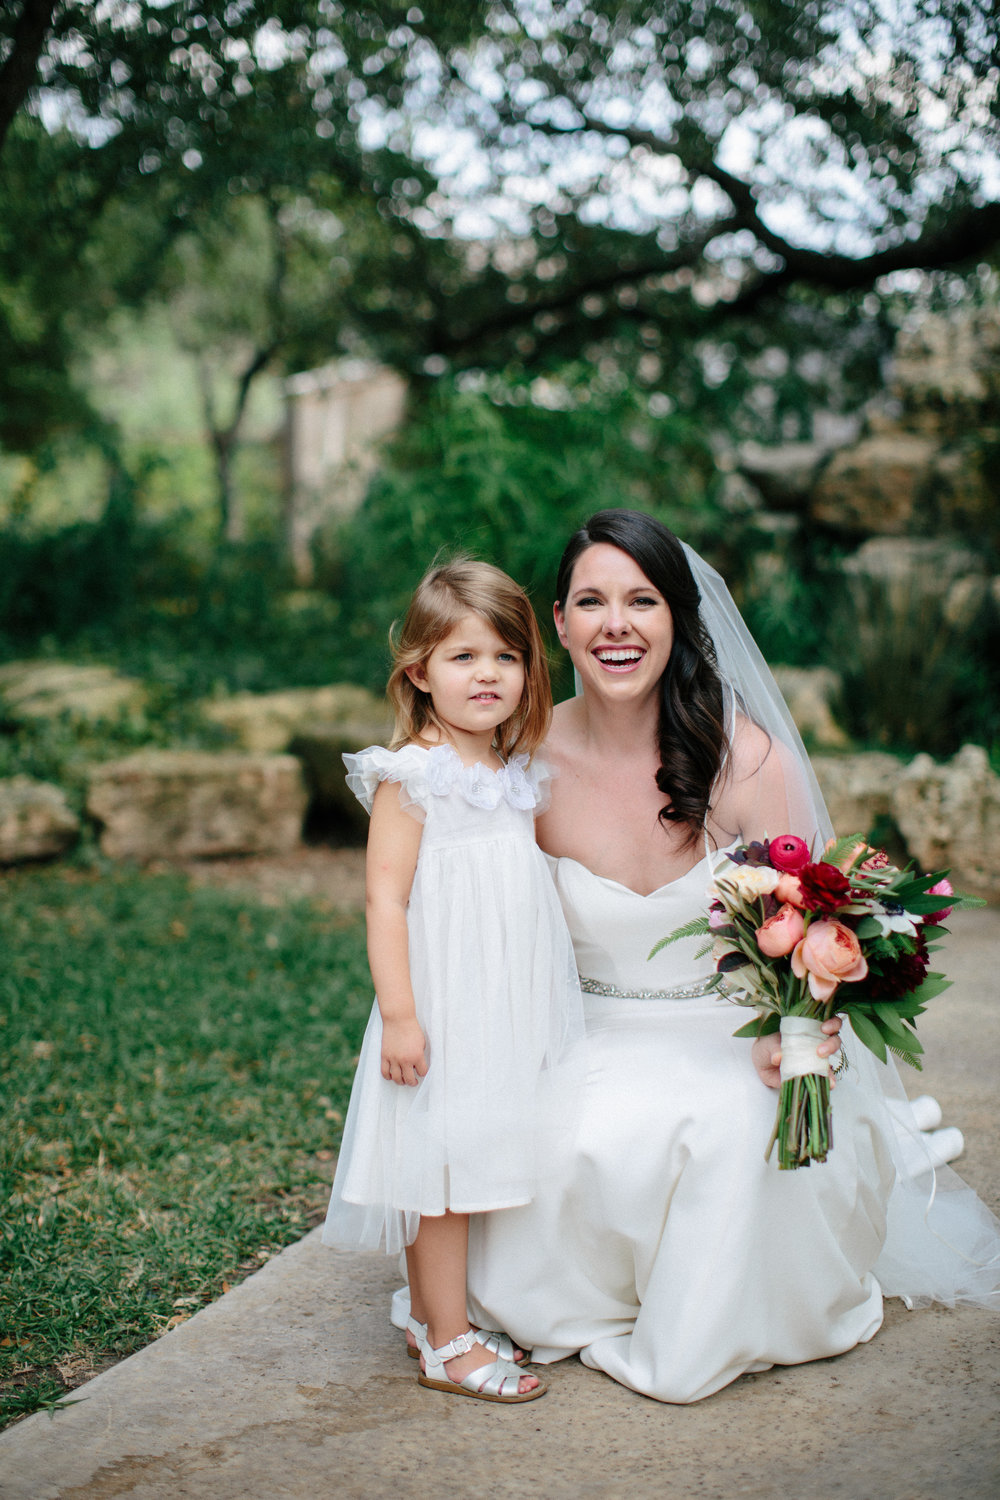 Paige-Newton-Wedding_Photography-Wedding-Party-Flower-Girl.jpg